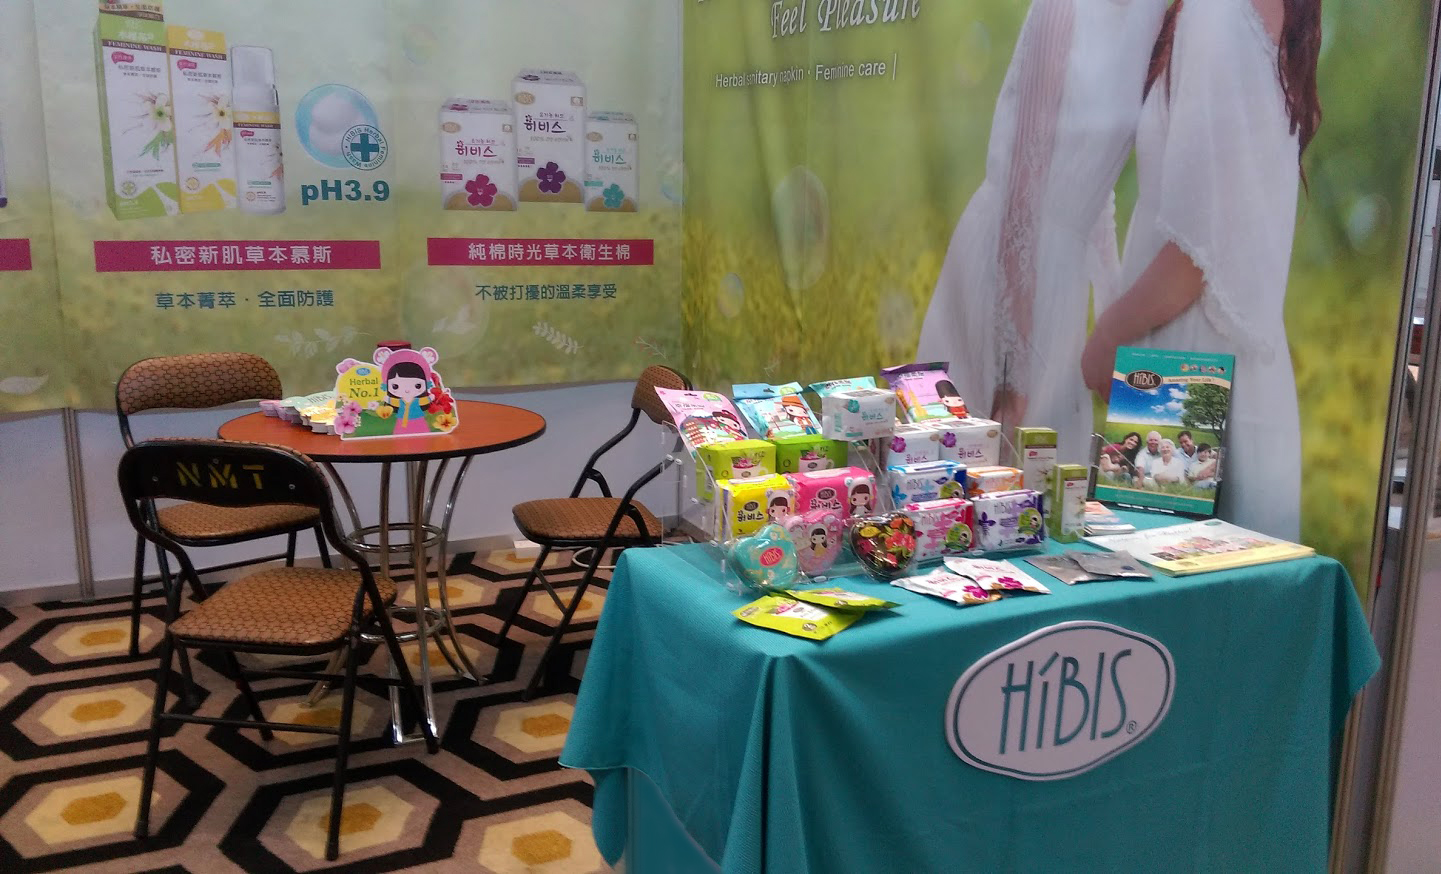 HIBIS Herbal sanitary napkin is a highly recommended sanitary napkin